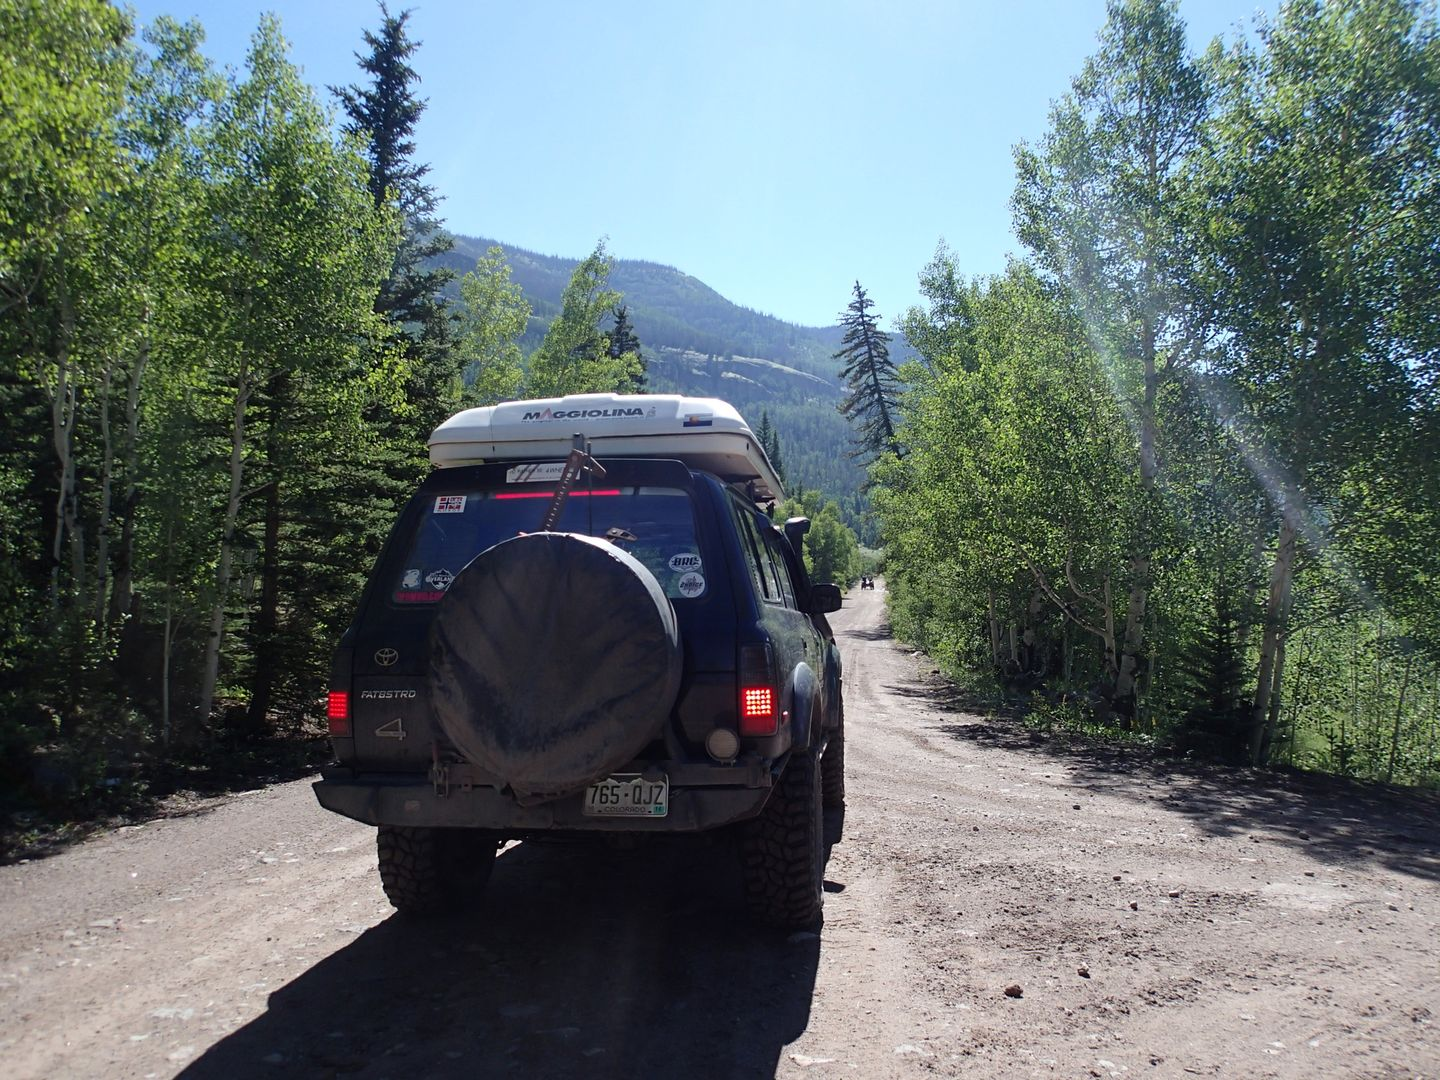 Stony Pass - Waypoint 27:  Lost Trail Campground